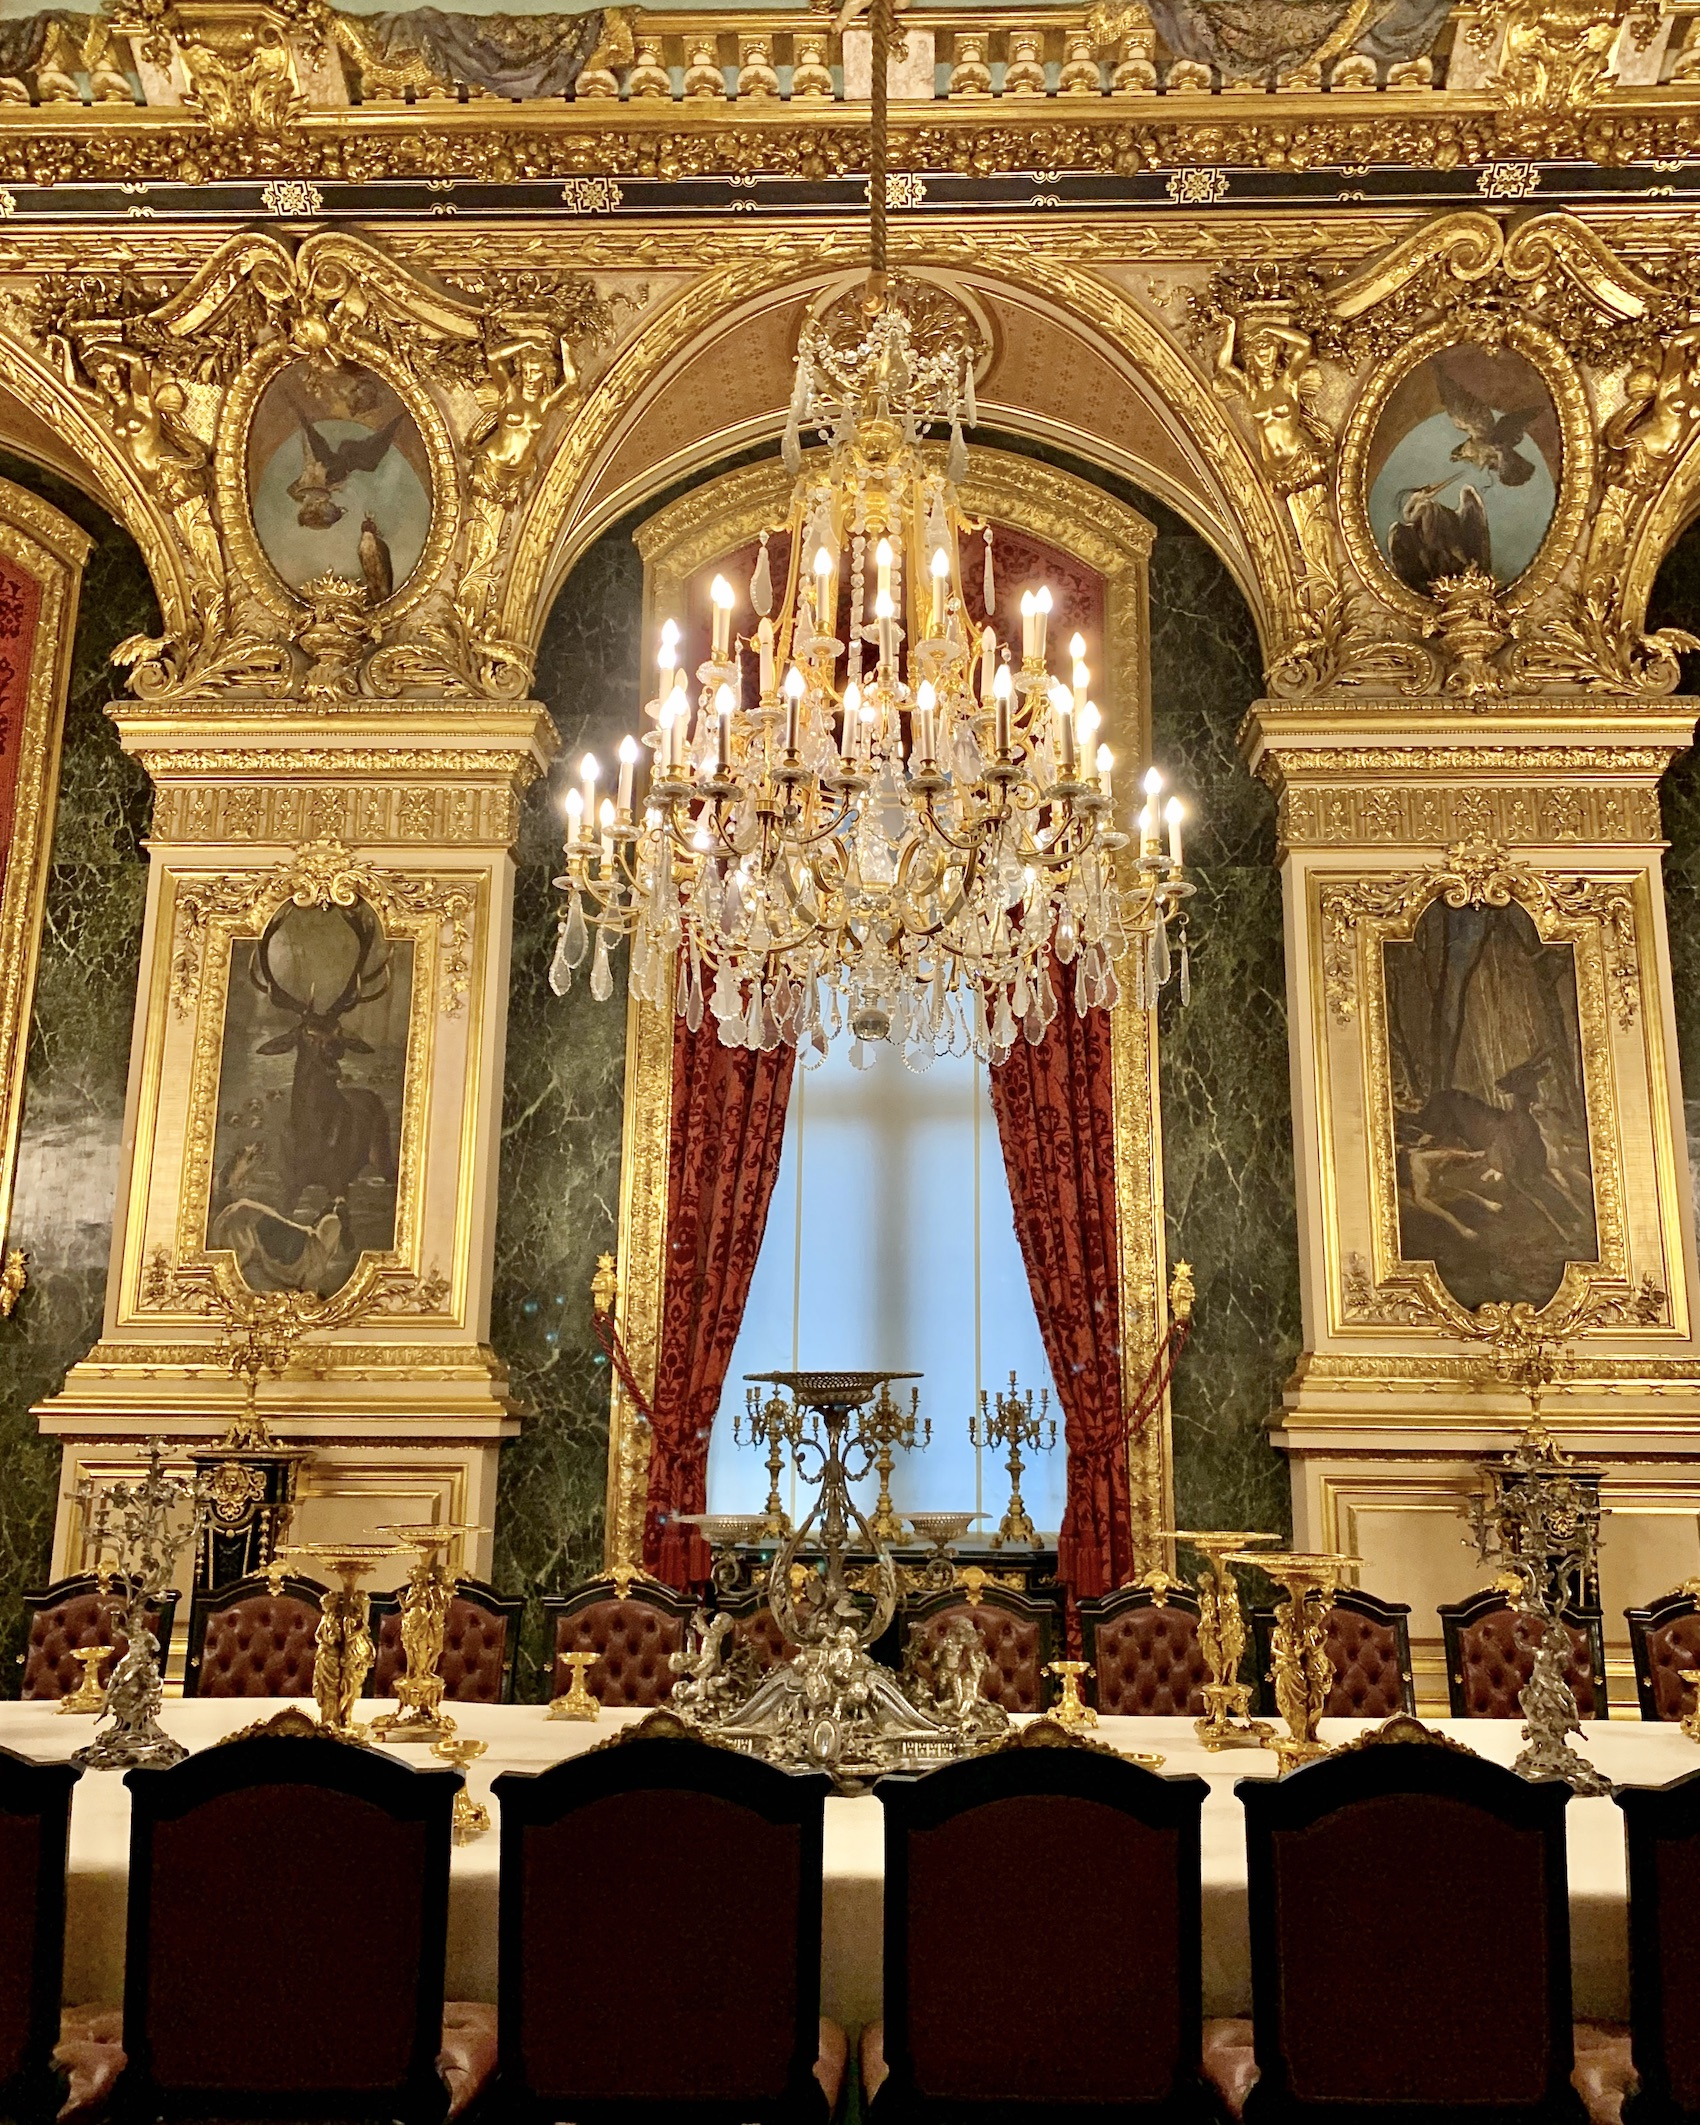 State Dining Room at the Louvre